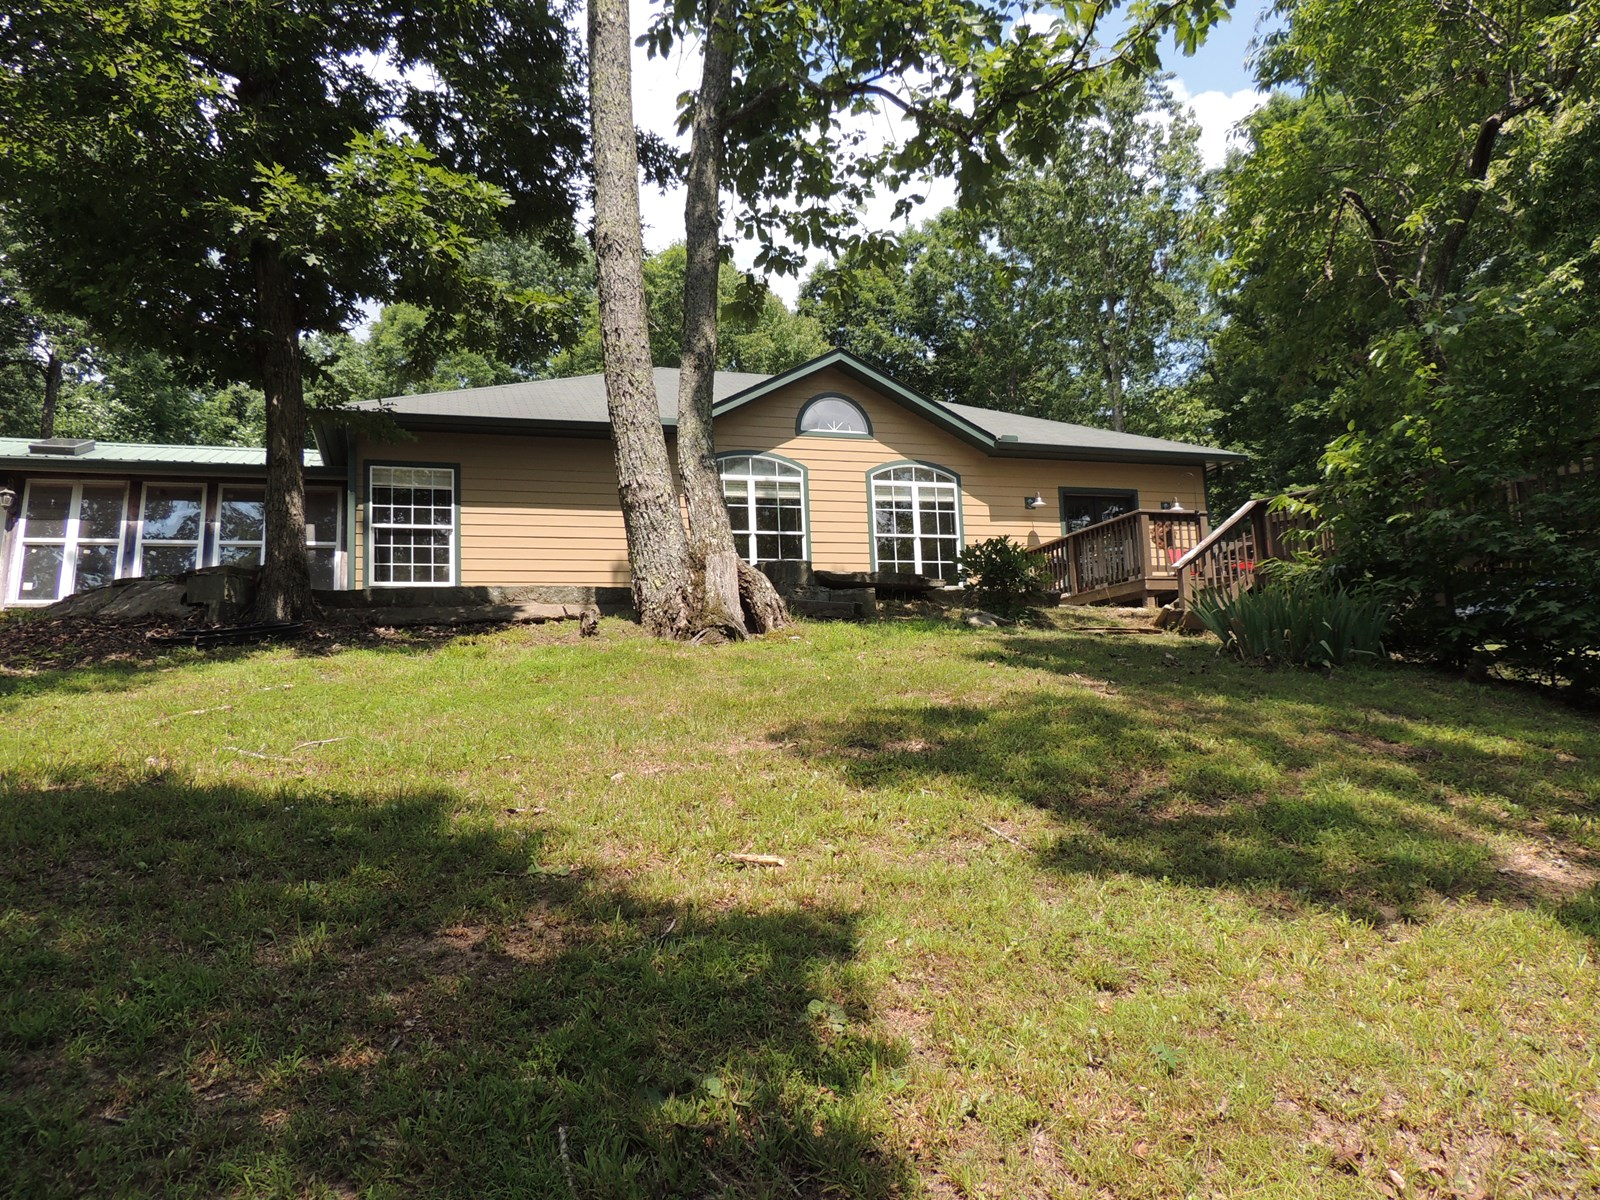 HOME WITH ACREAGE & CREEK FOR SALE IN TN